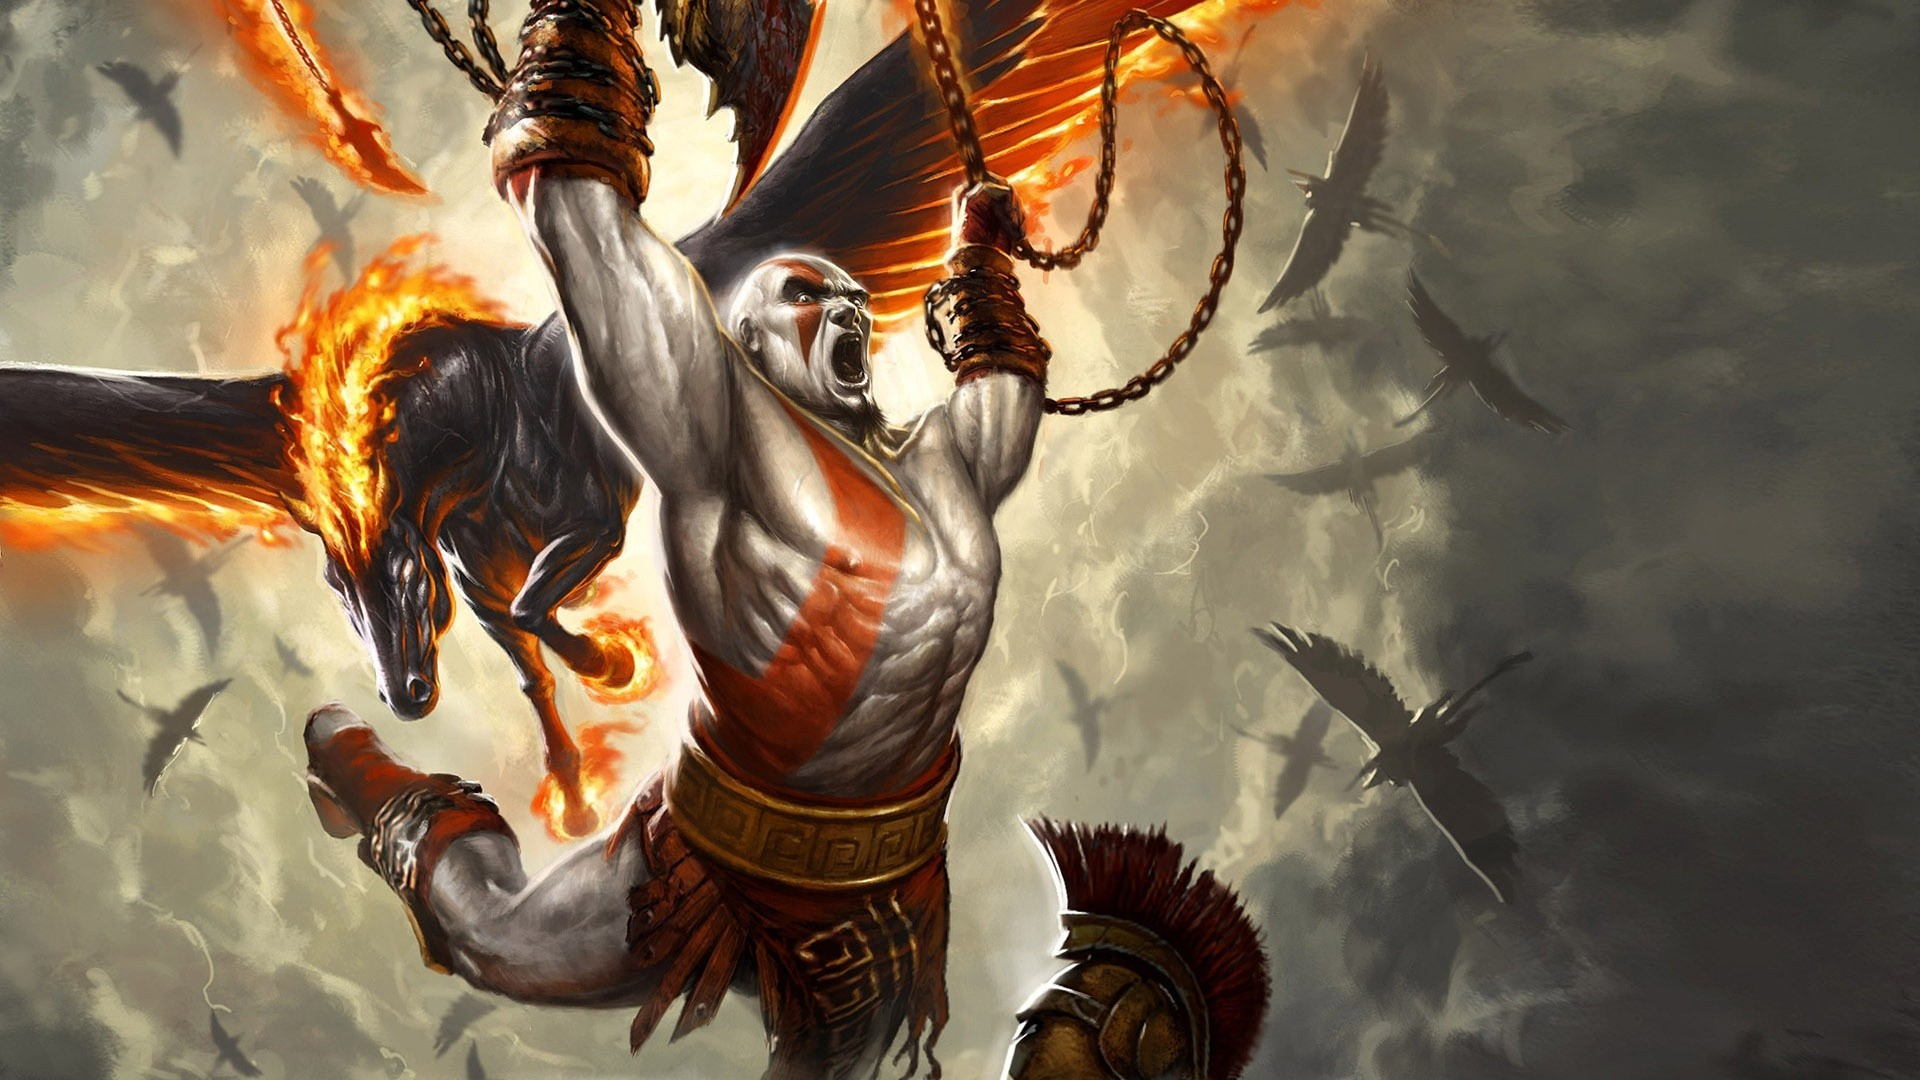 Free Download Kratos God Of War Wallpaper 9384 1920x1080 For